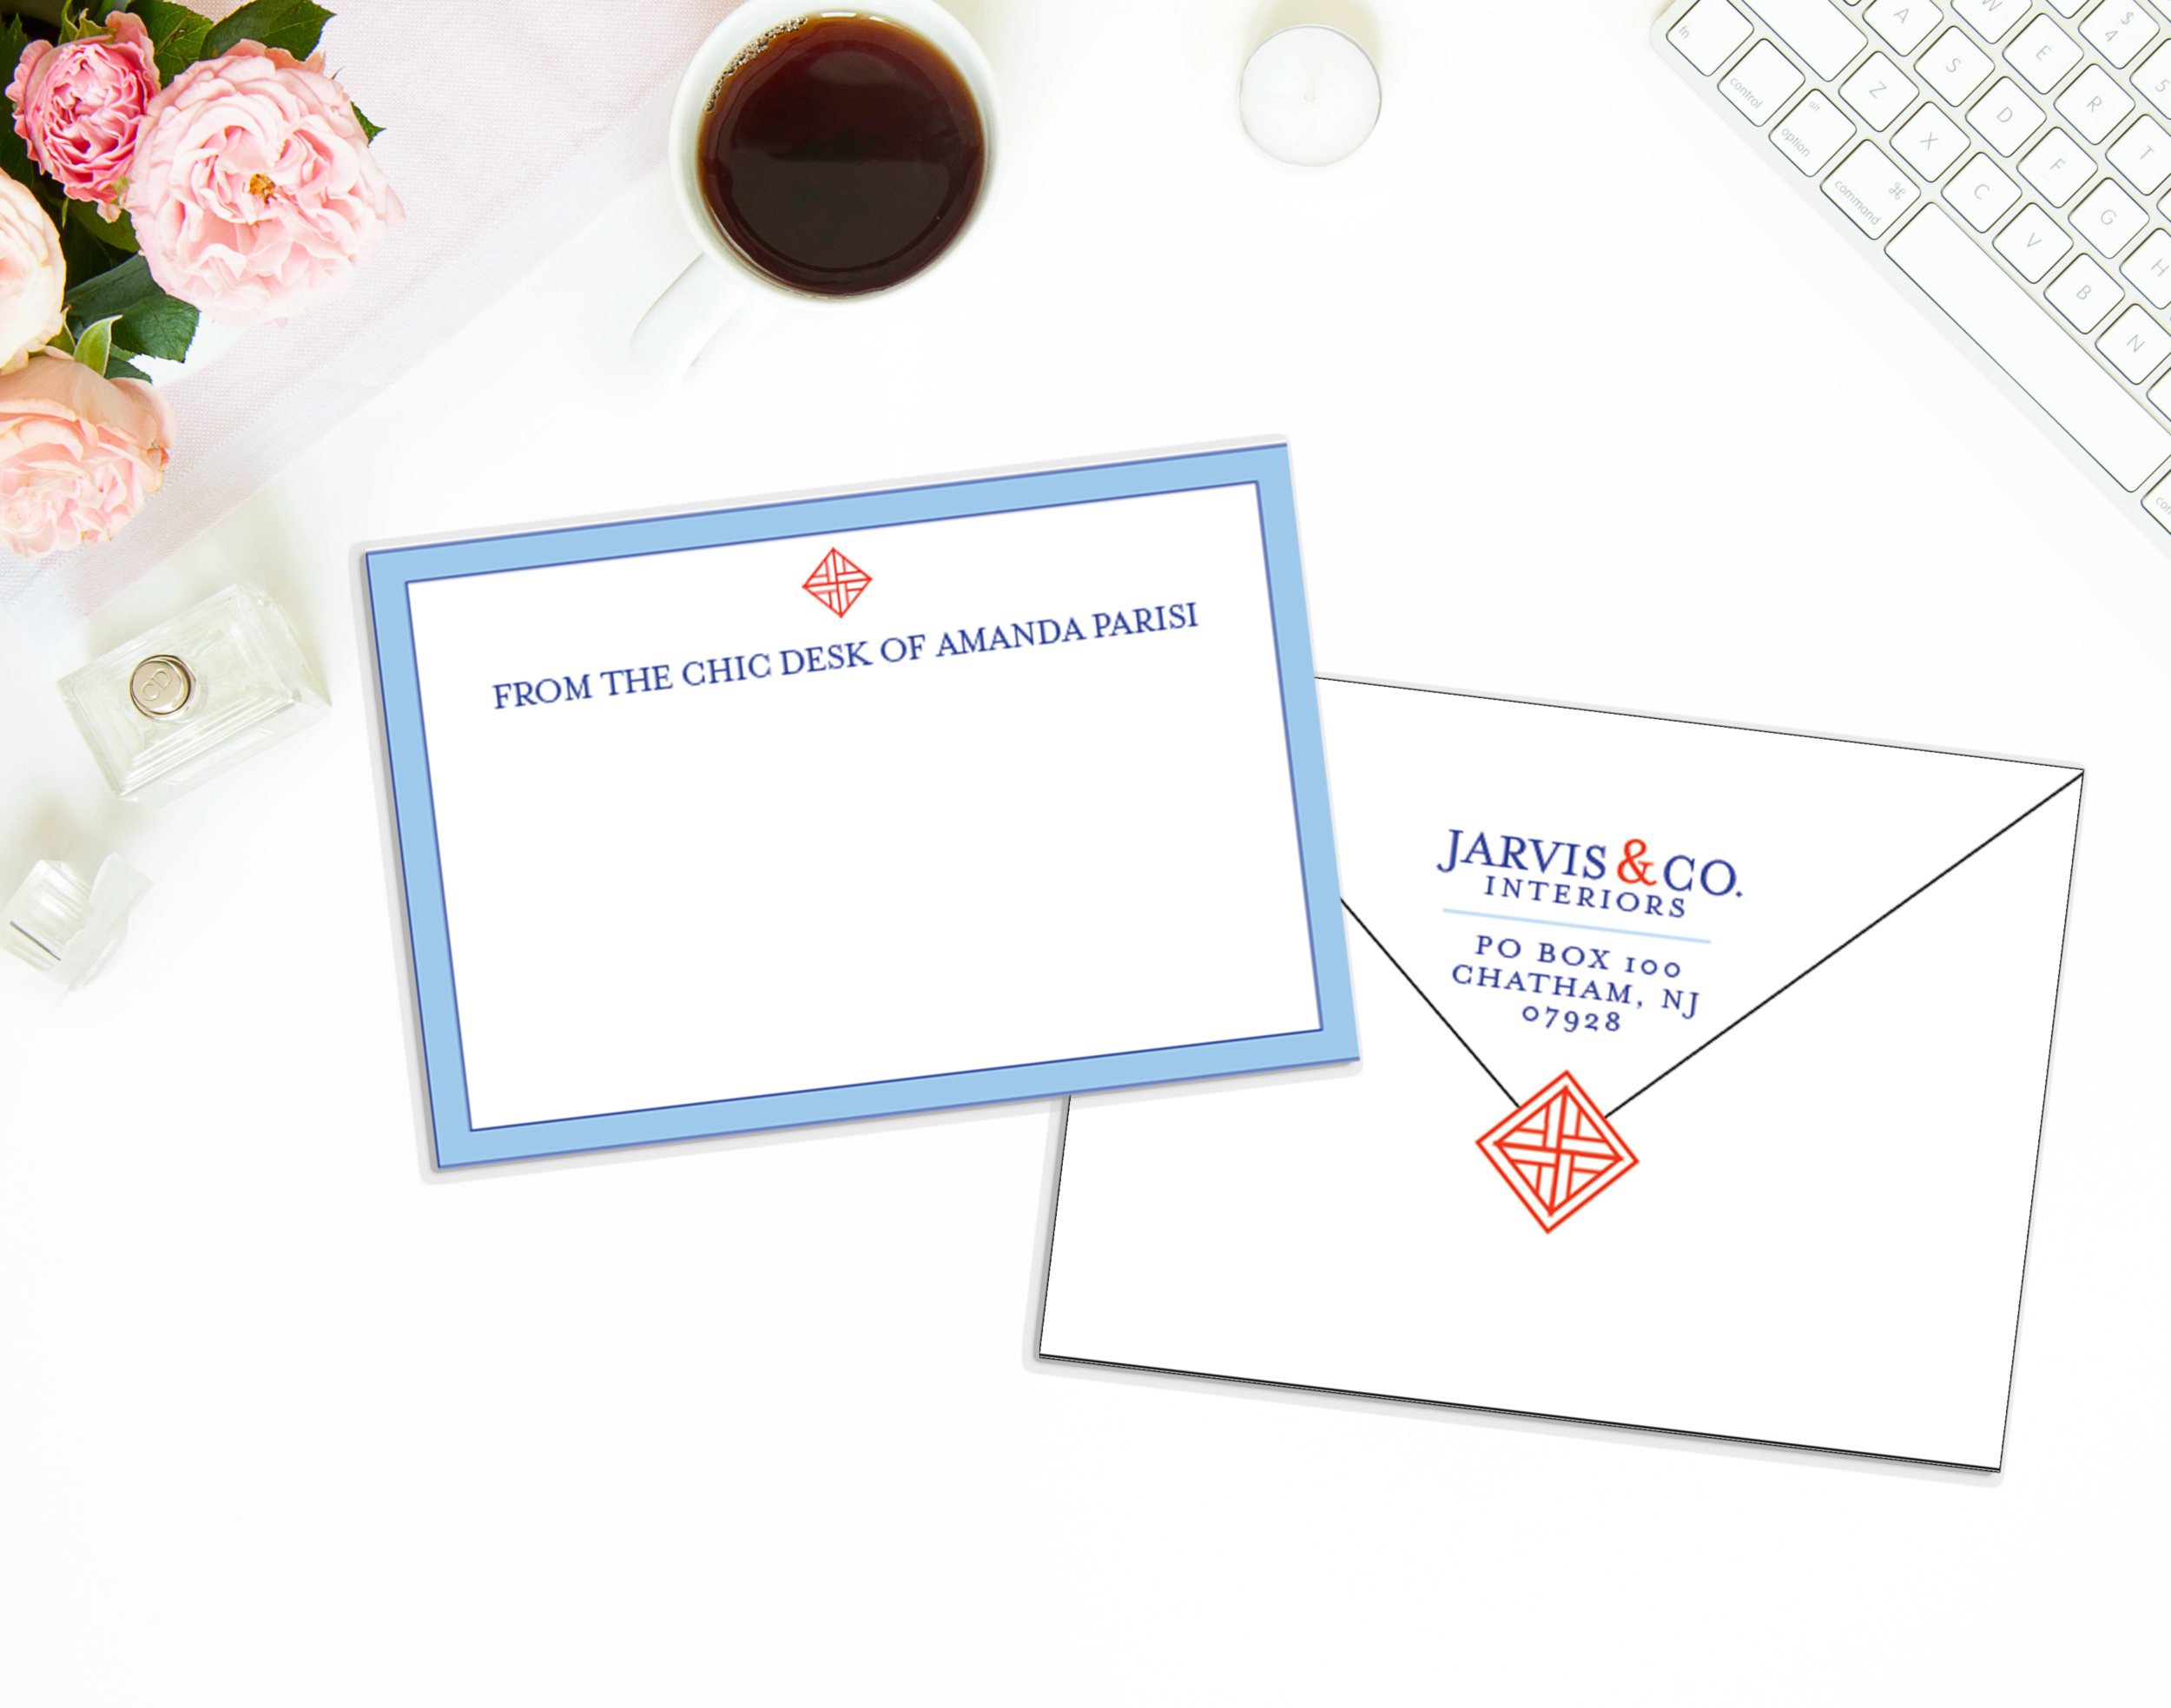 Cute stationery for writing thank you notes and messages to clients and vendors!